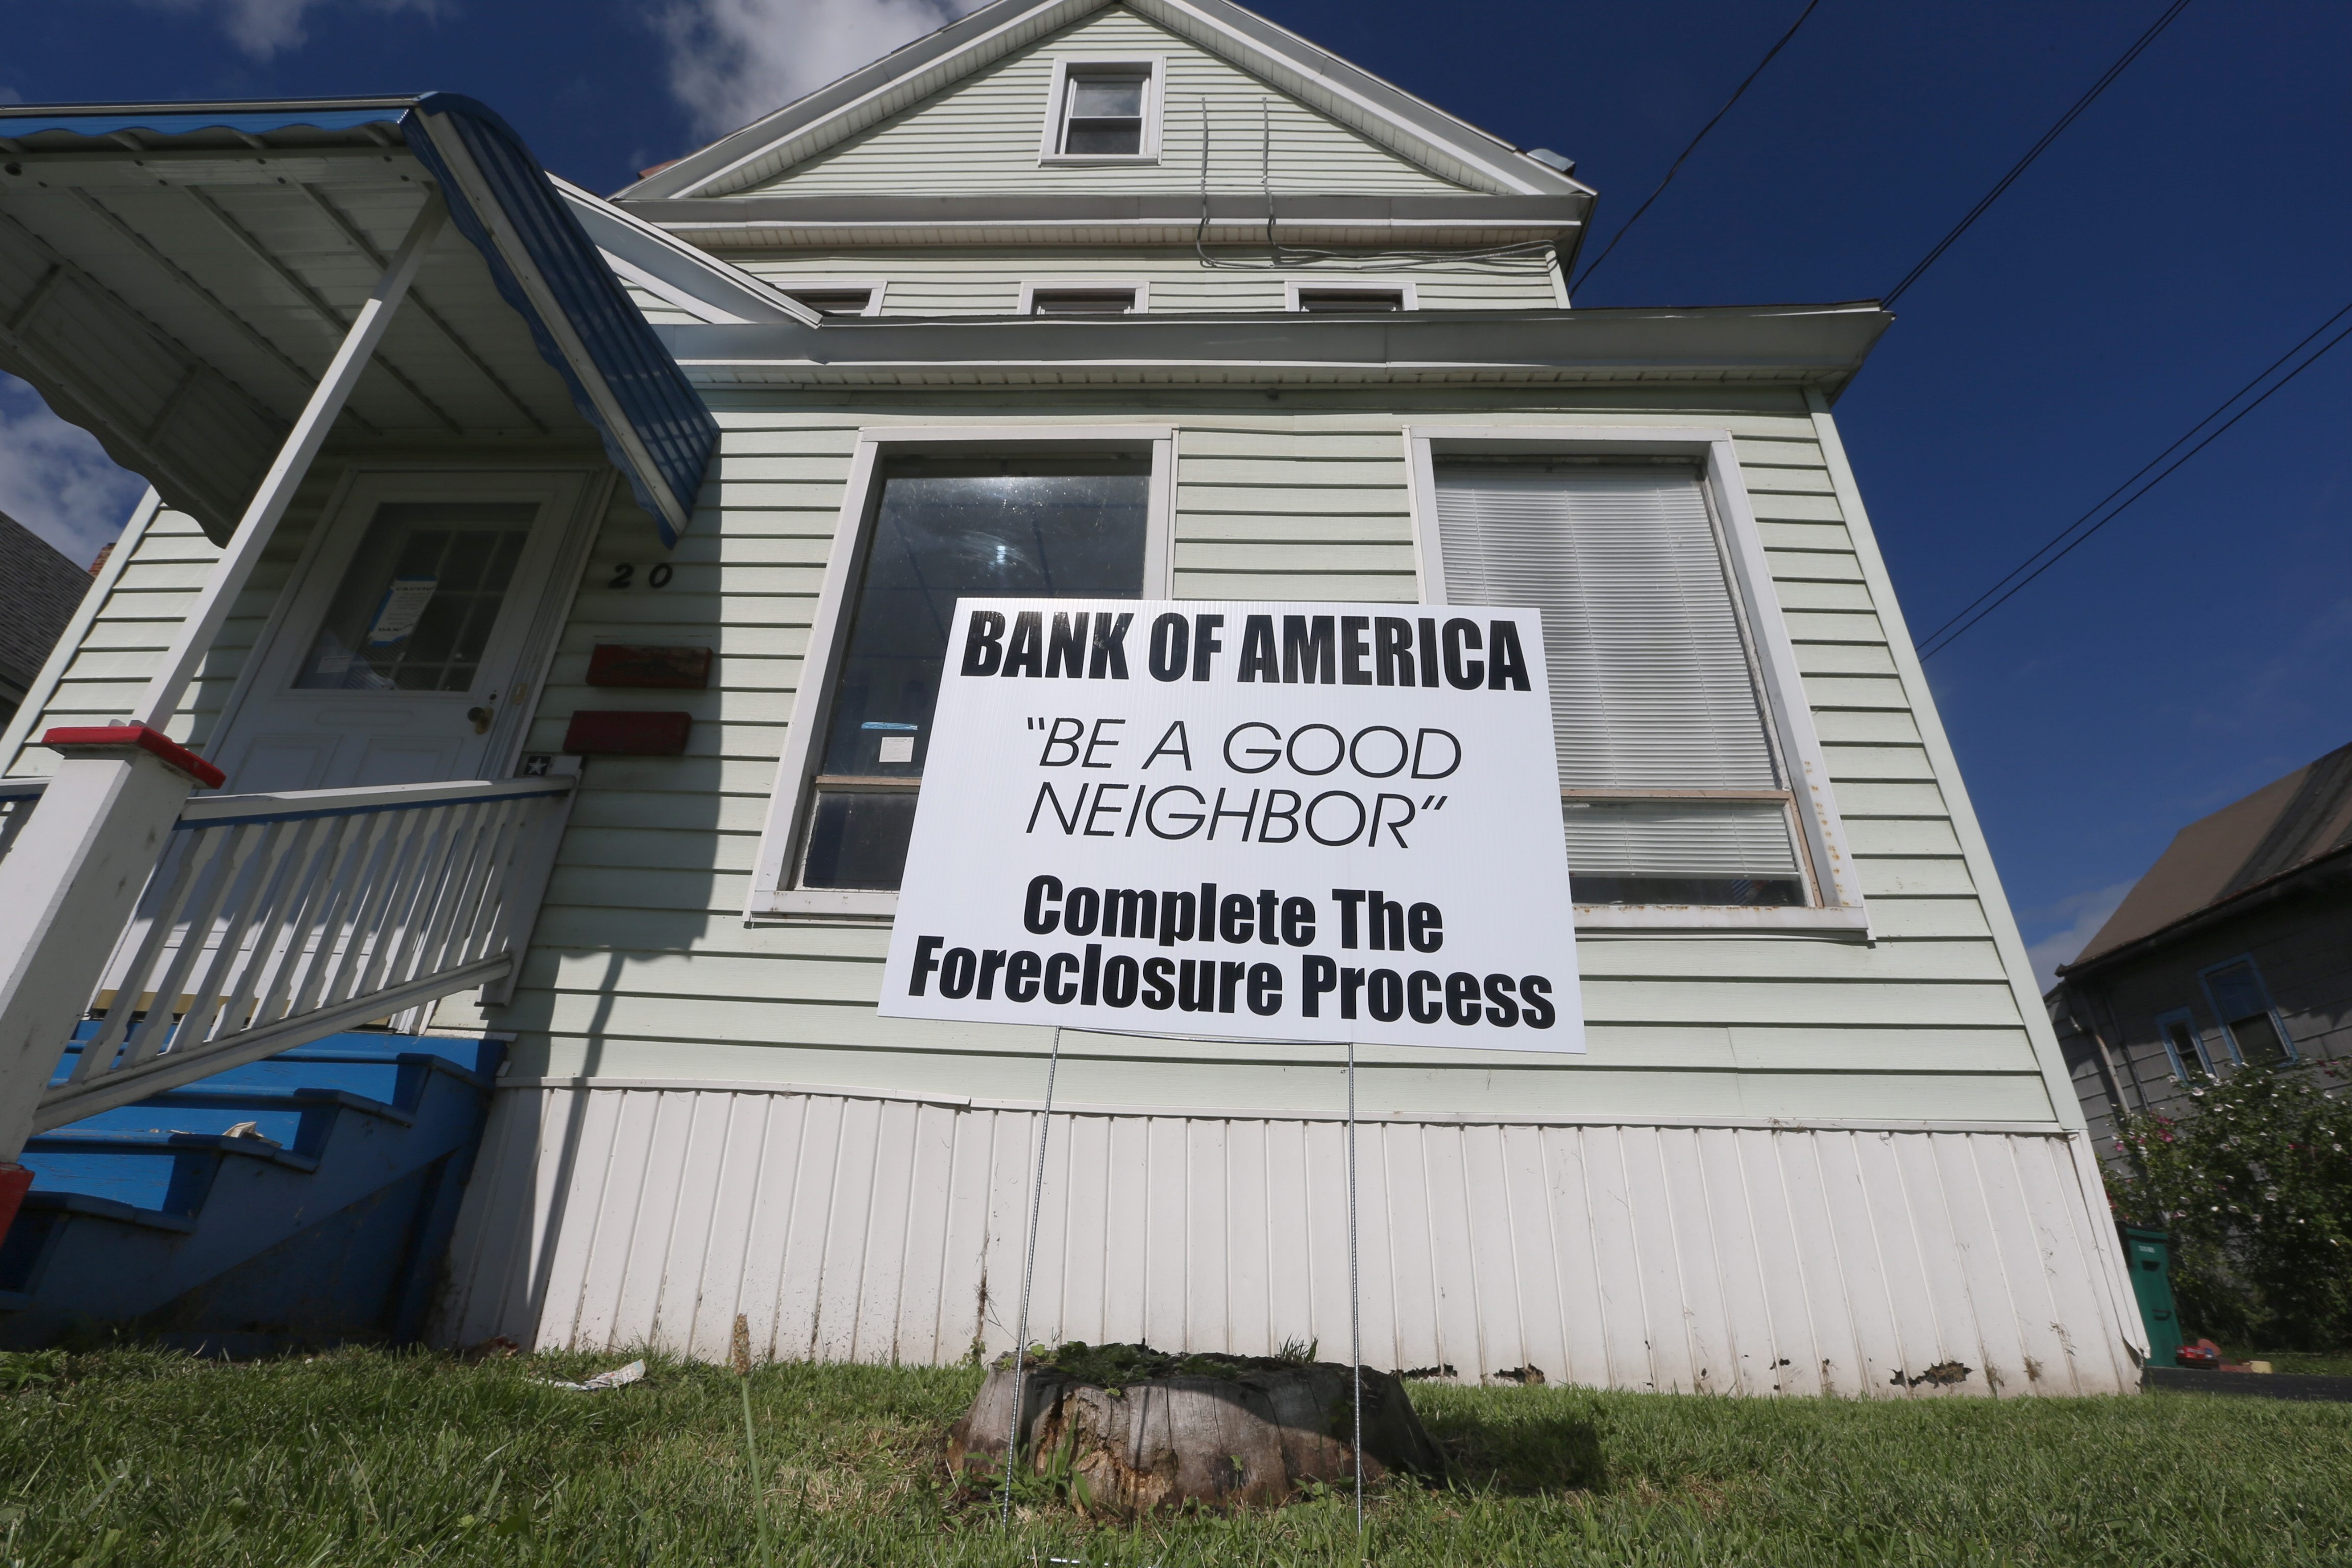 """New regulations proposed by the state Department of Financial Services would put pressure on banks and mortgage service firms to report instances of vacant, abandoned homes stuck in foreclosure.   Department of Financial Services' superintendent, Maria T. Vullo, said in a statement the agency """"will take necessary and appropriate action to make sure this law is followed and those responsible are held accountable."""""""